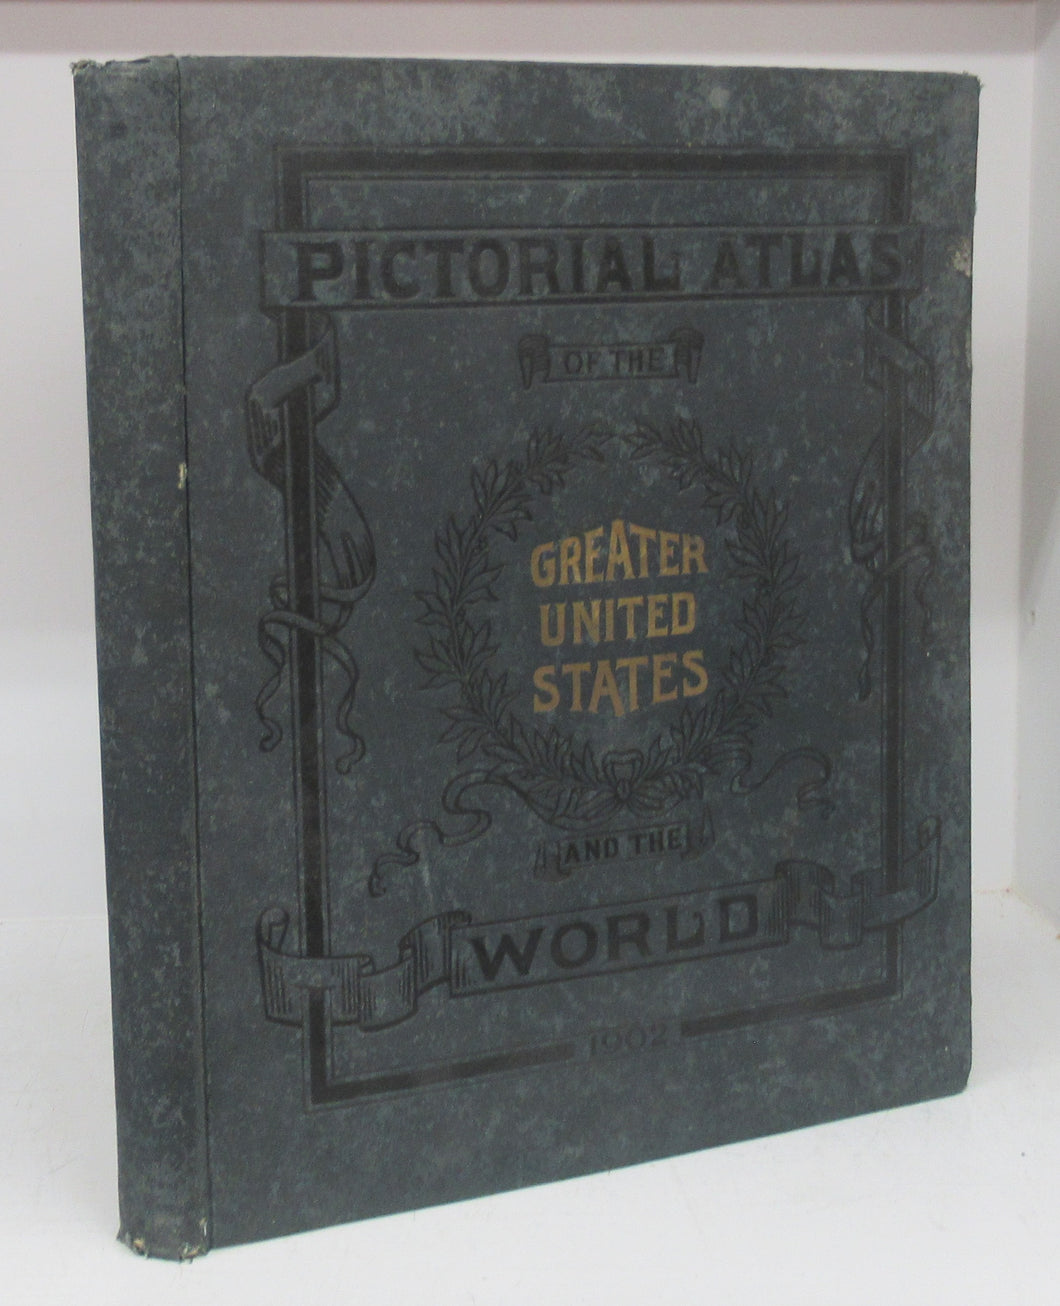 Pictorial Atlas of the Greater United States and the World